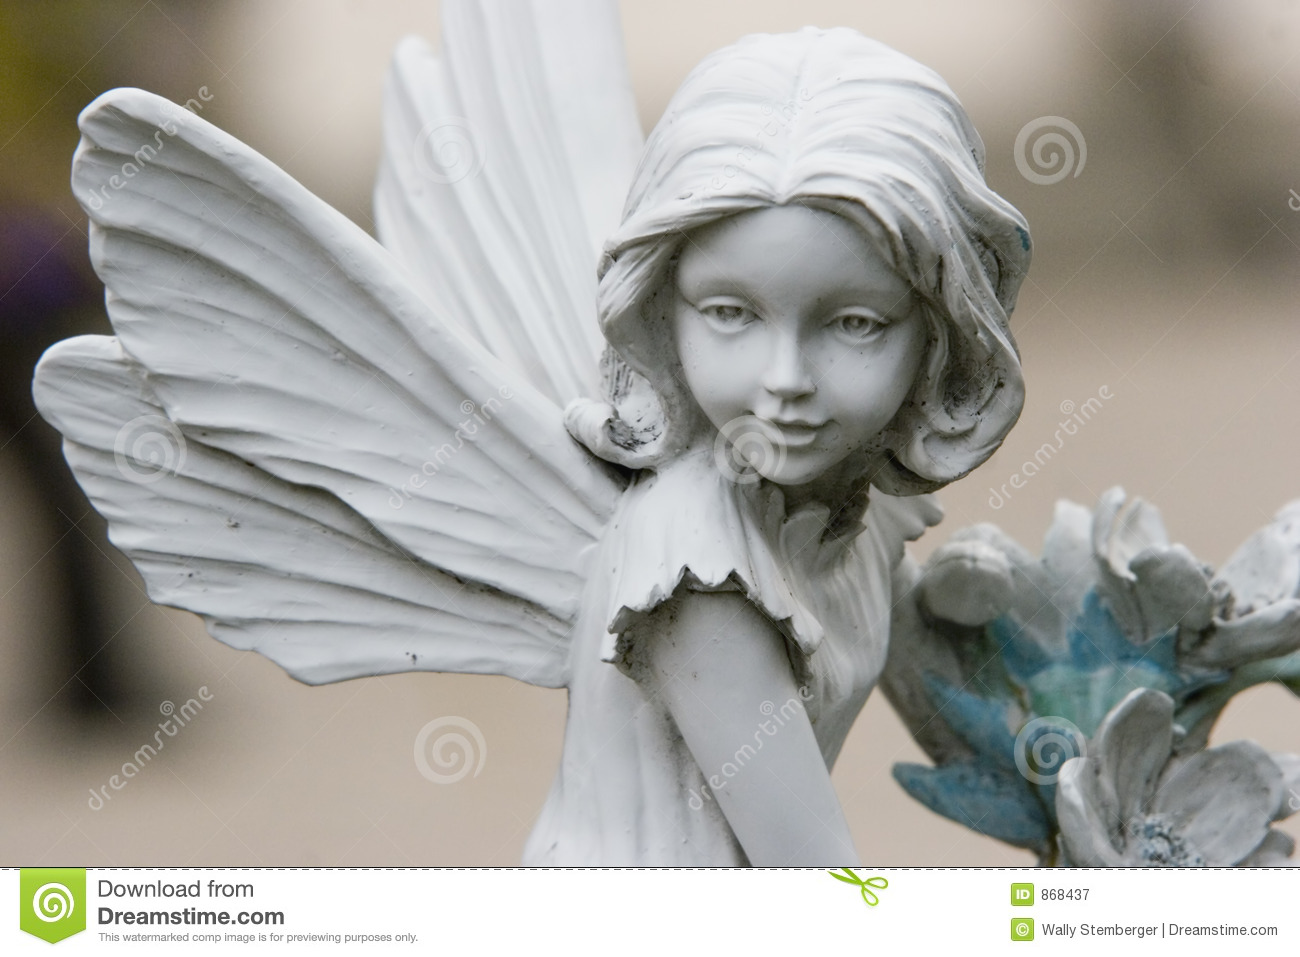 Faerie Statues Fairy Statue Stock Image Image Of Wings Smile Pretty 868437